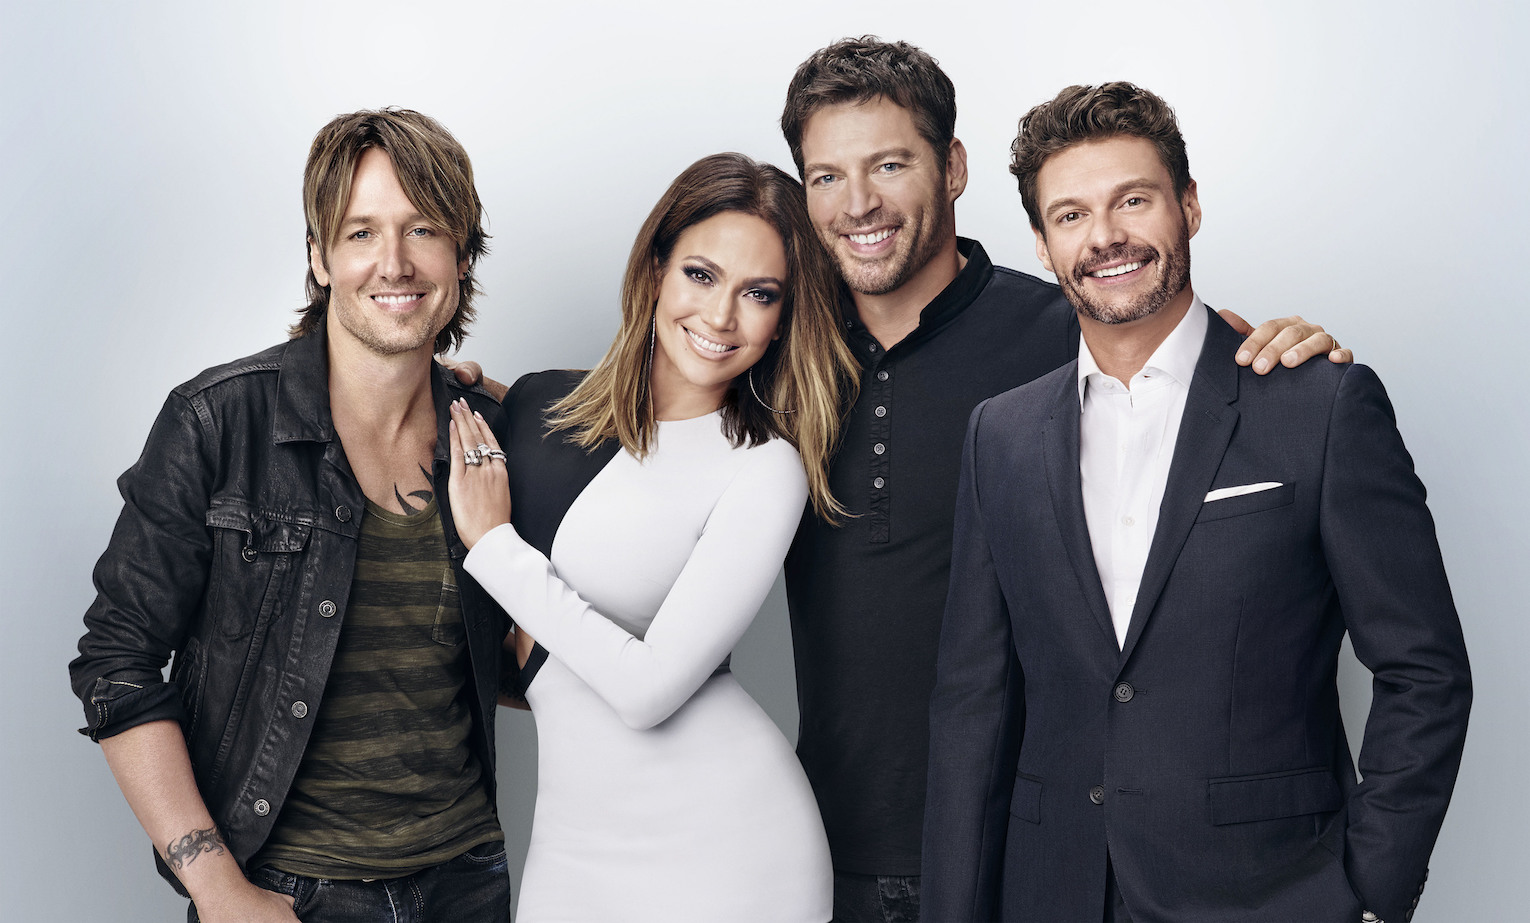 `American Idol`: From left: Keith Urban, Jennifer Lopez, Harry Connick Jr. and Ryan Seacrest. `American Idol` will begin its 15th - and farewell - season with a special two-night, four-hour premiere event Wednesday and Thursday on FOX. (Fox Broadcasting Co. photo by Michael Becker)